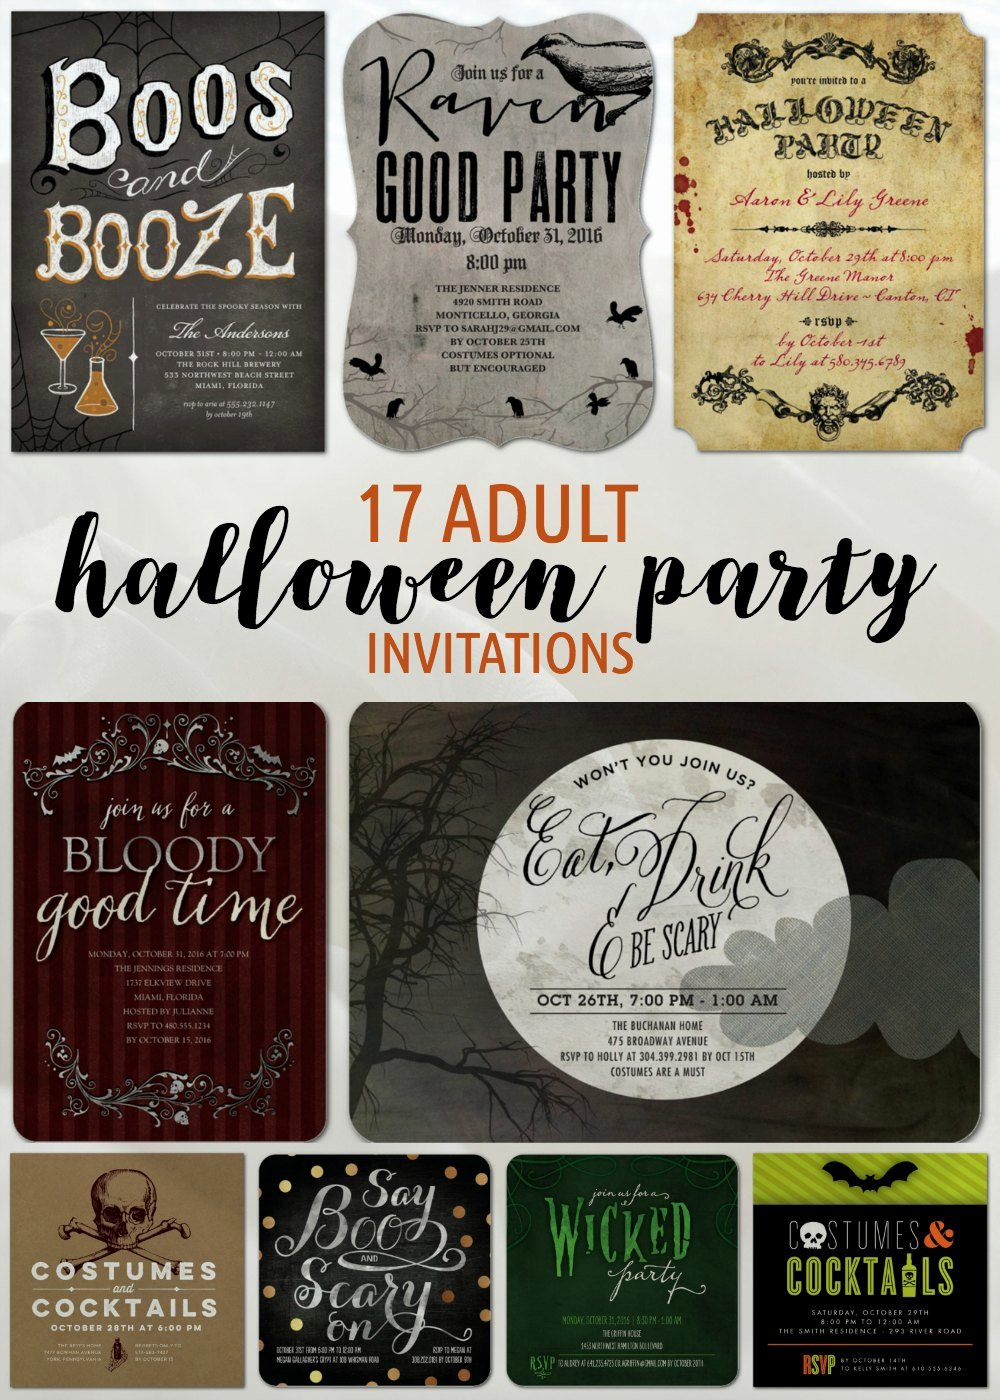 Halloween Birthday Party Invitations Unique 17 Adult Halloween Party Invitations Newlywed Survival